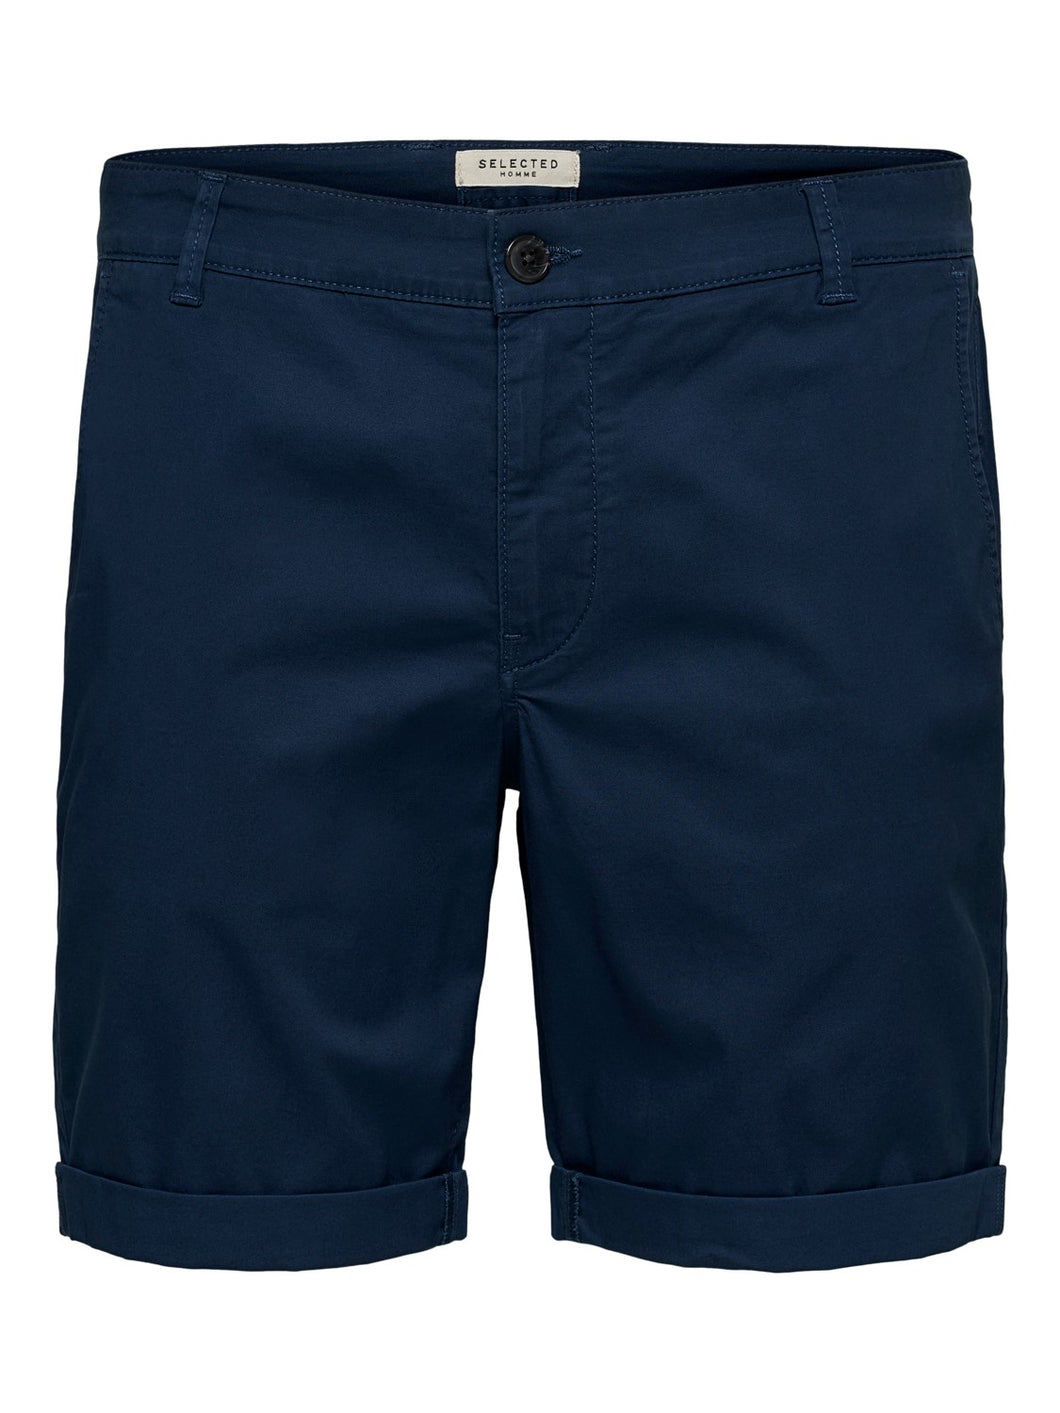 Selected Homme Paris Shorts Navy